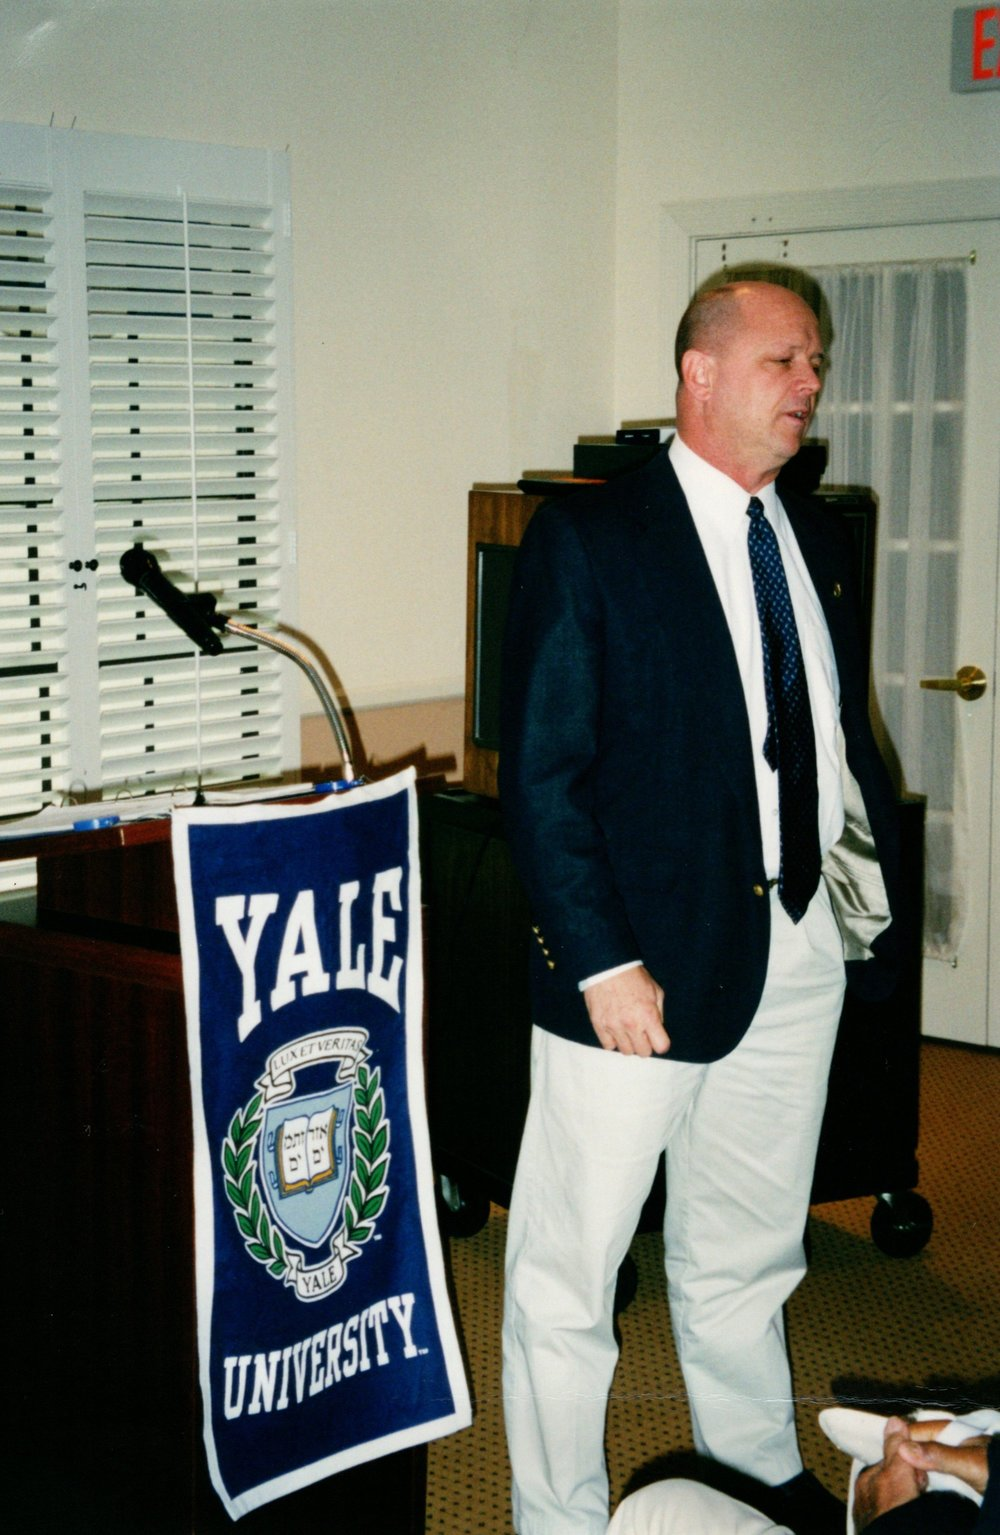 3_7_2002 - COACH SIEDLECKI LUNCHEON - COLLIER ATHLETIC CLUB 5.jpg